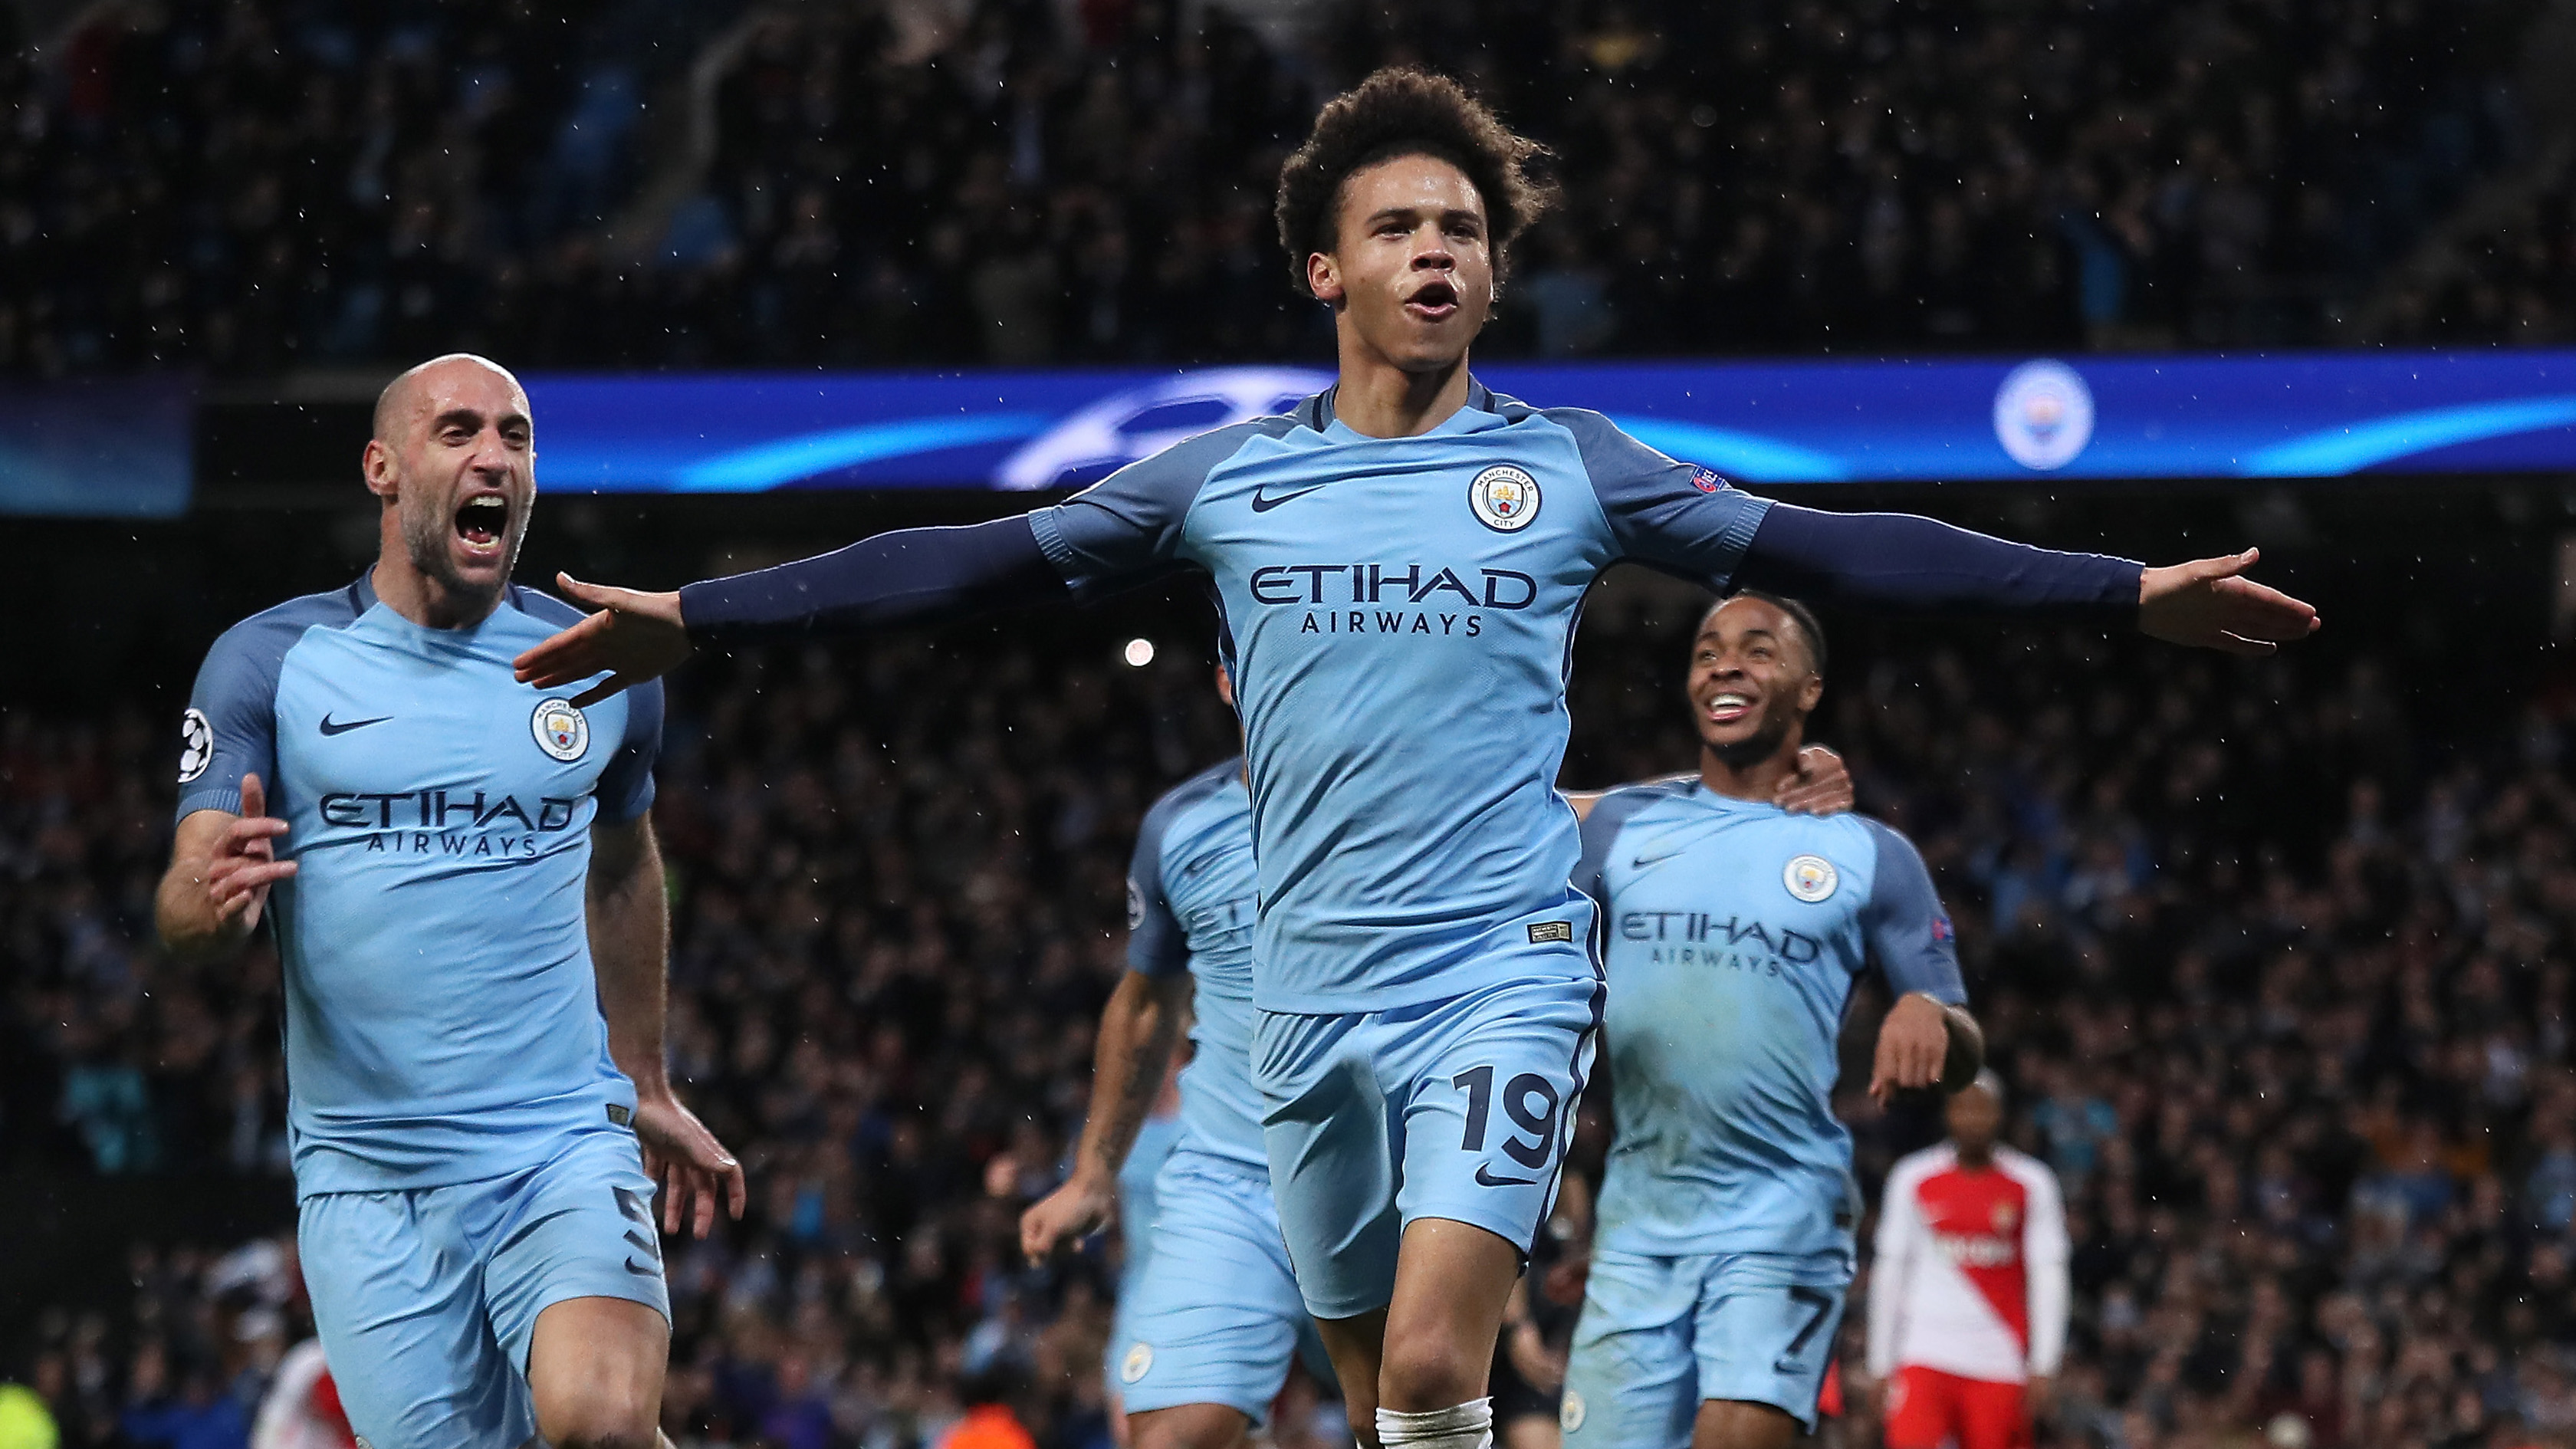 Leroy Sané tattoo: Manchester City man's back tattoo (photo)